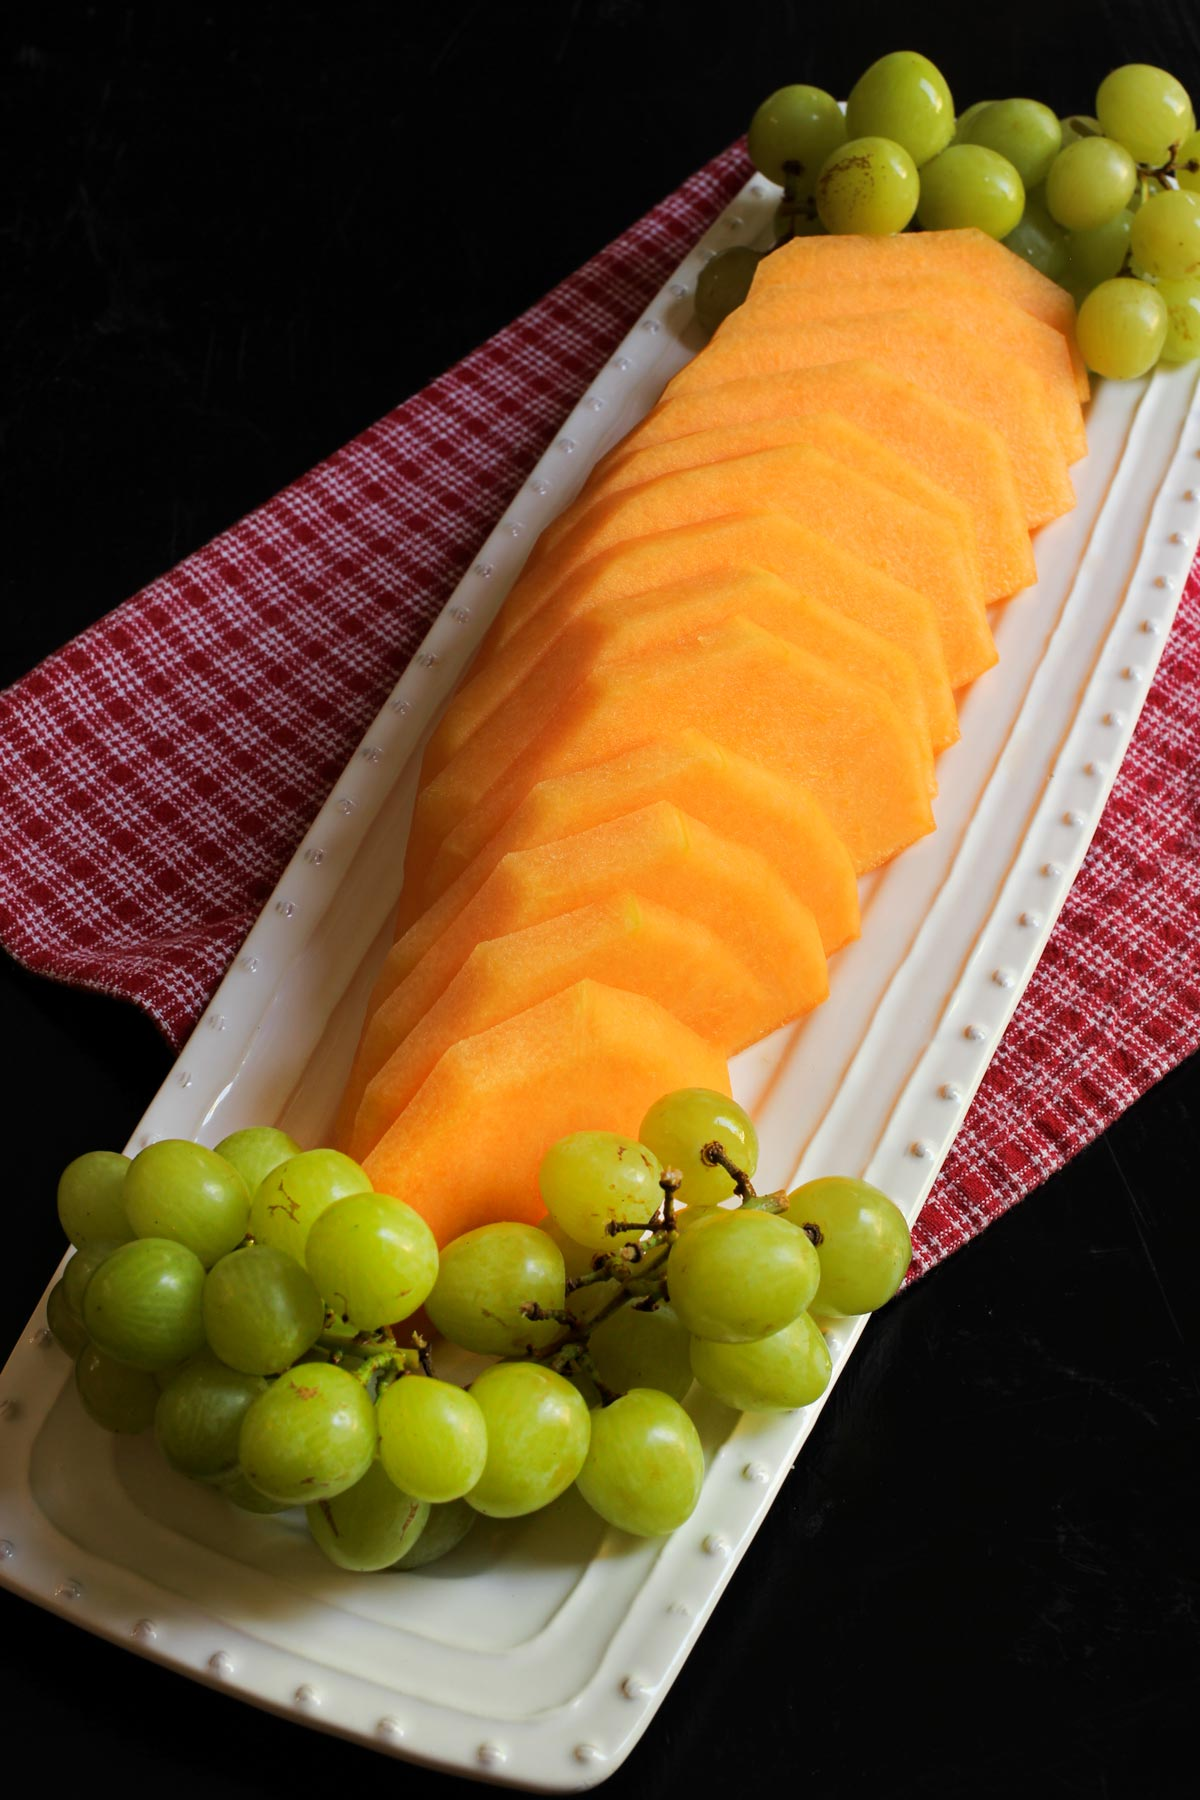 white platter of melon slices and green grape clusters.